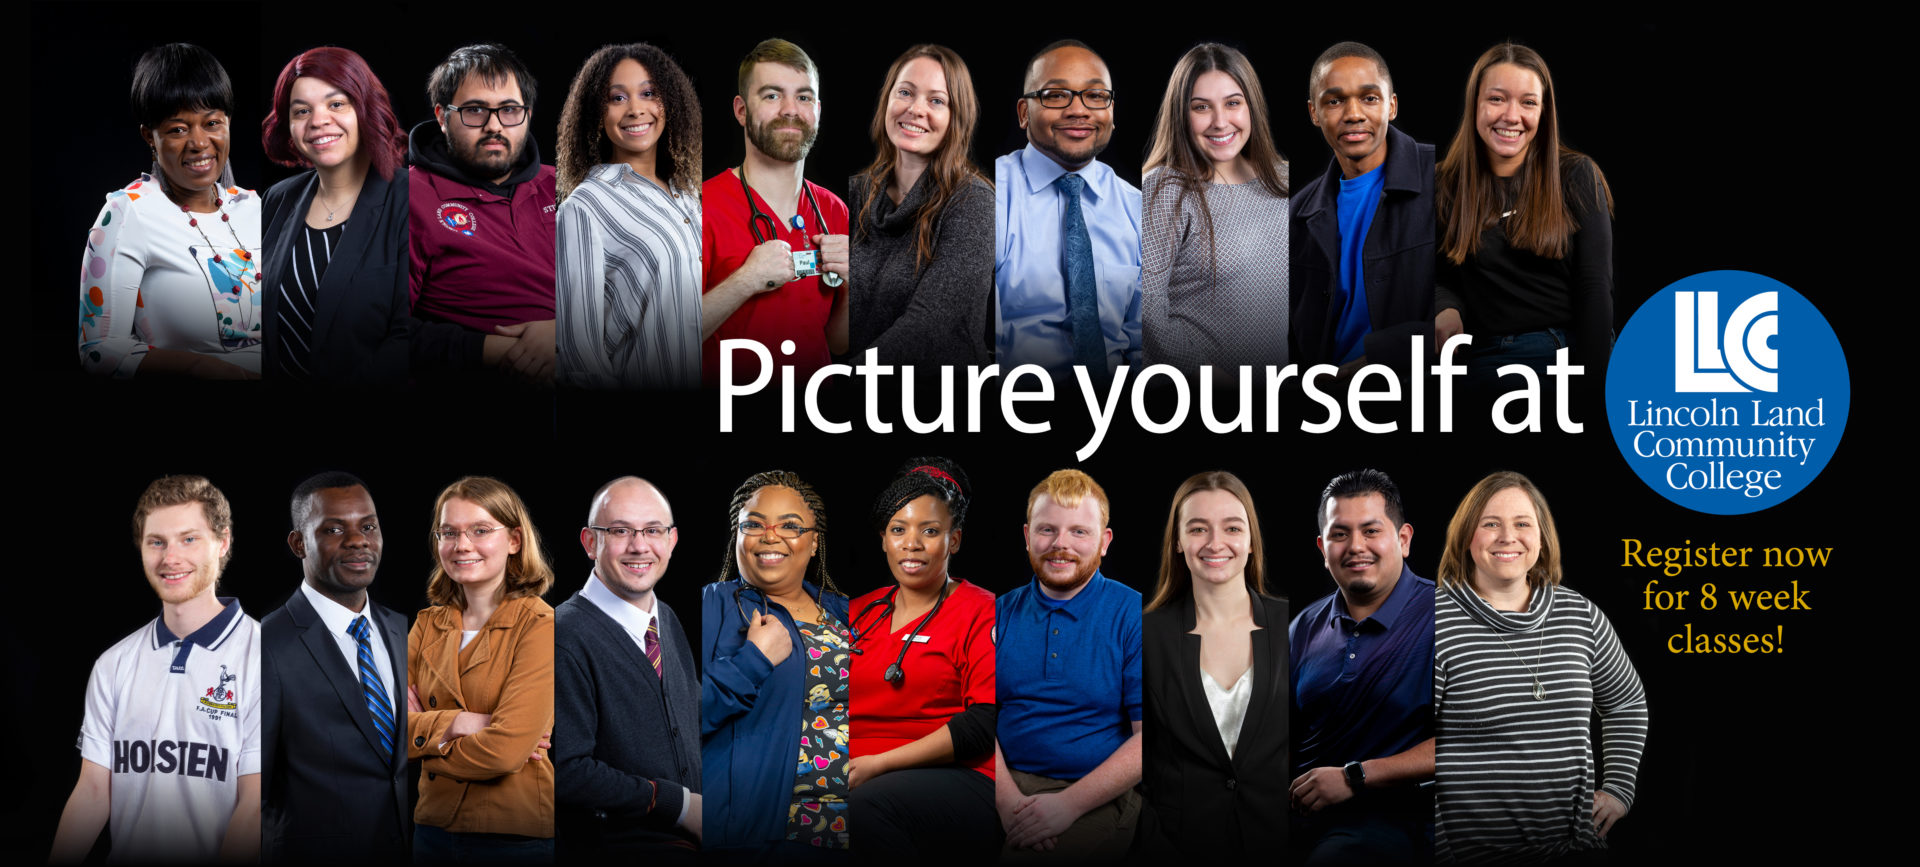 Picture yourself at LLCC Lincoln Land Community College. Register now for 8 week classes!